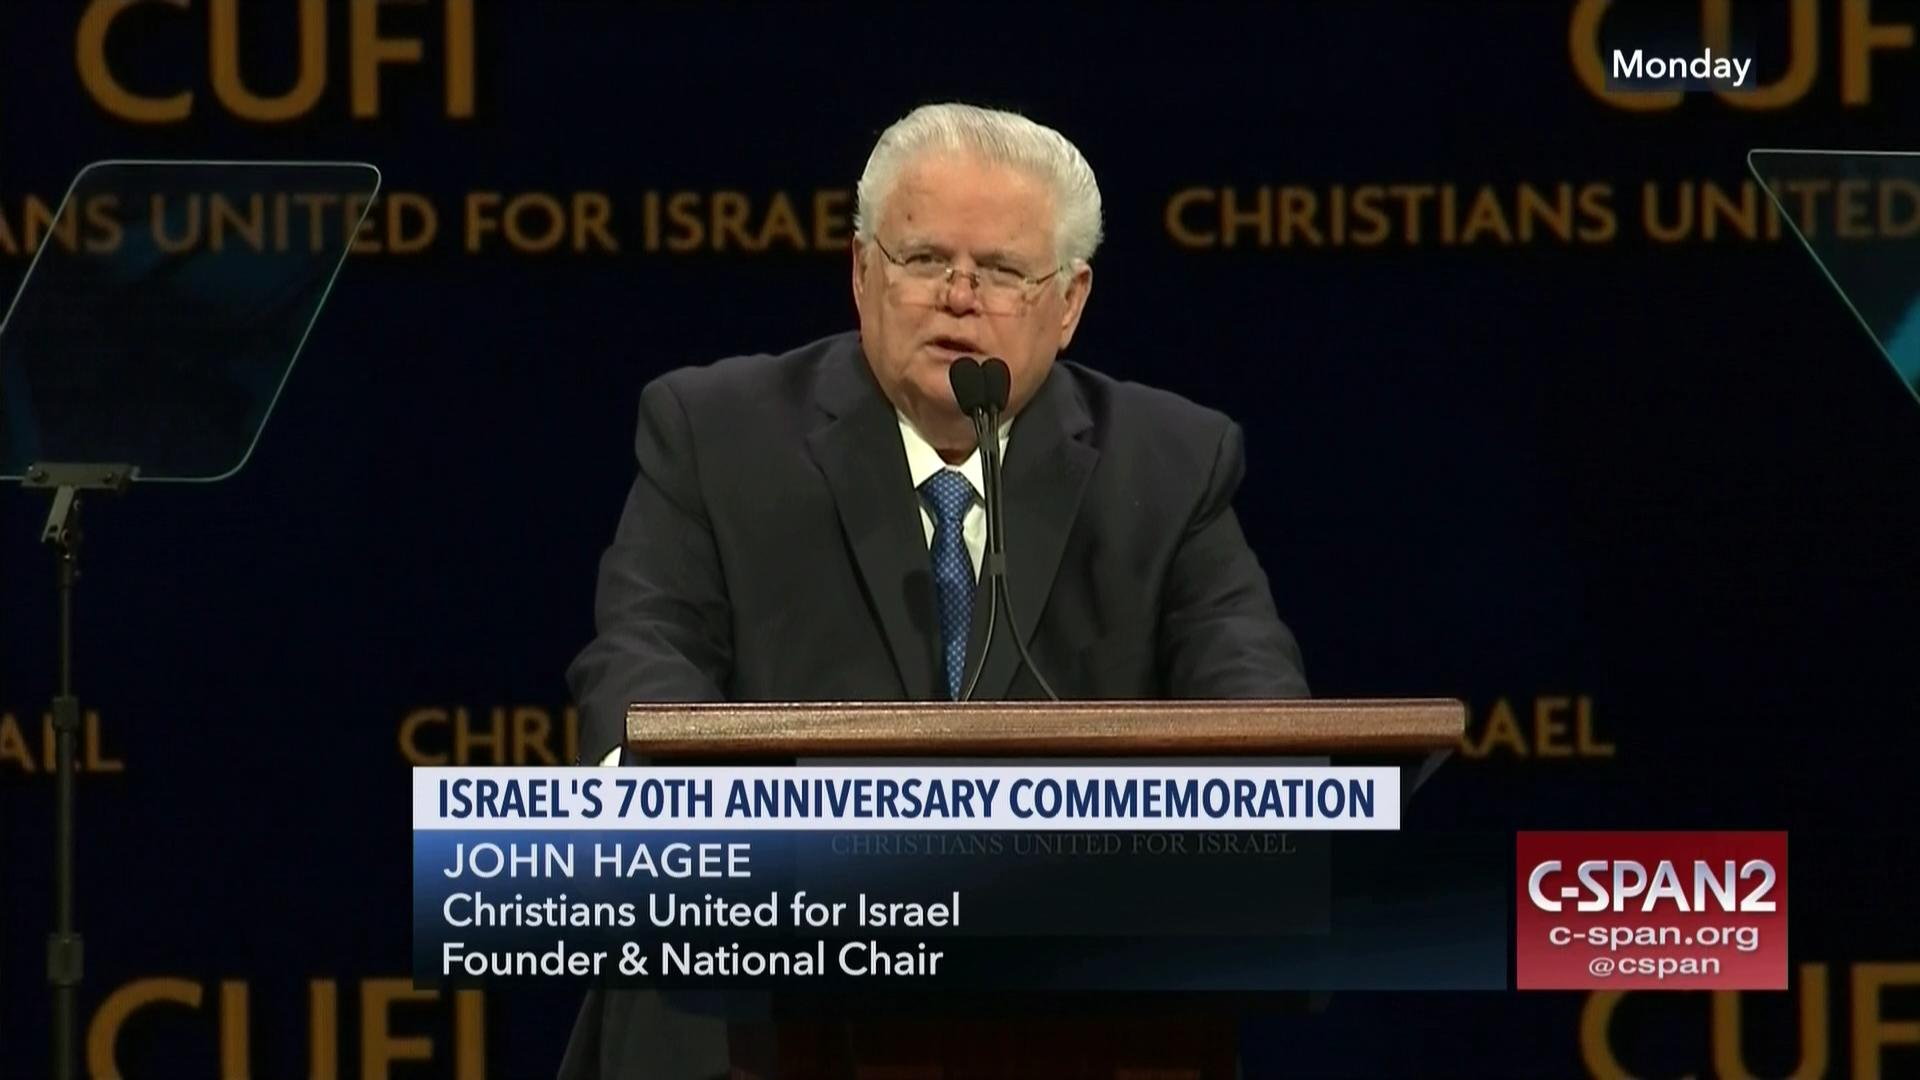 Israel's 70th Anniversary Commemoration, John Hagee